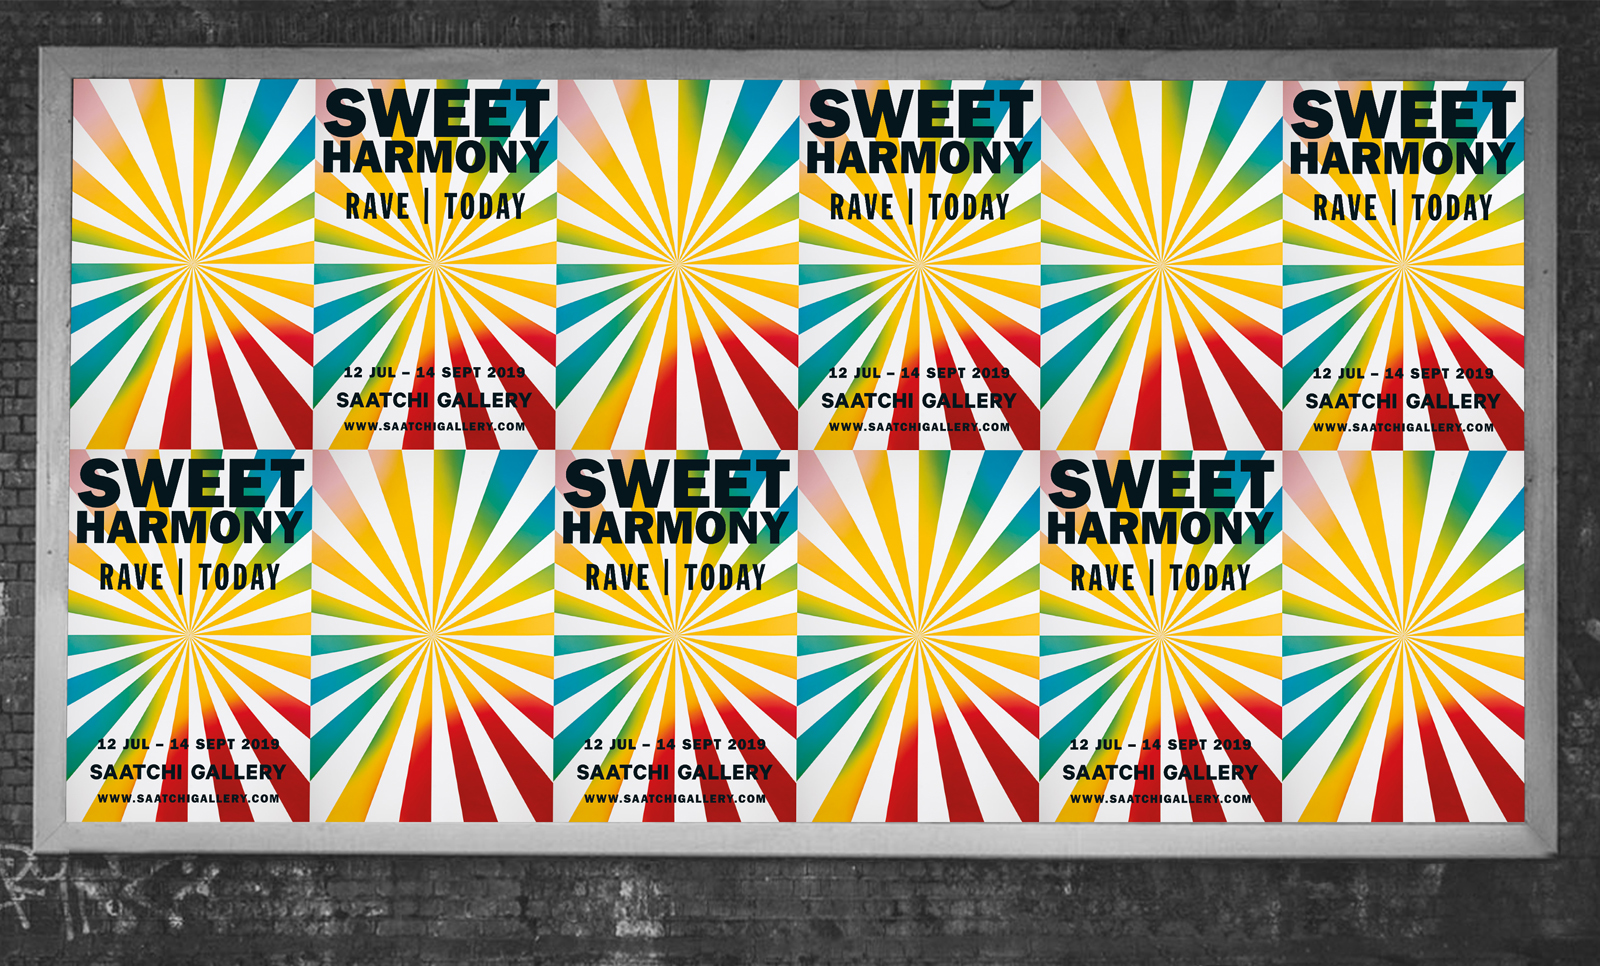 Sweet-Harmony-Saatchi-Gallery-Rave-Today-48Sheet-James-Lee-Duffy.jpg